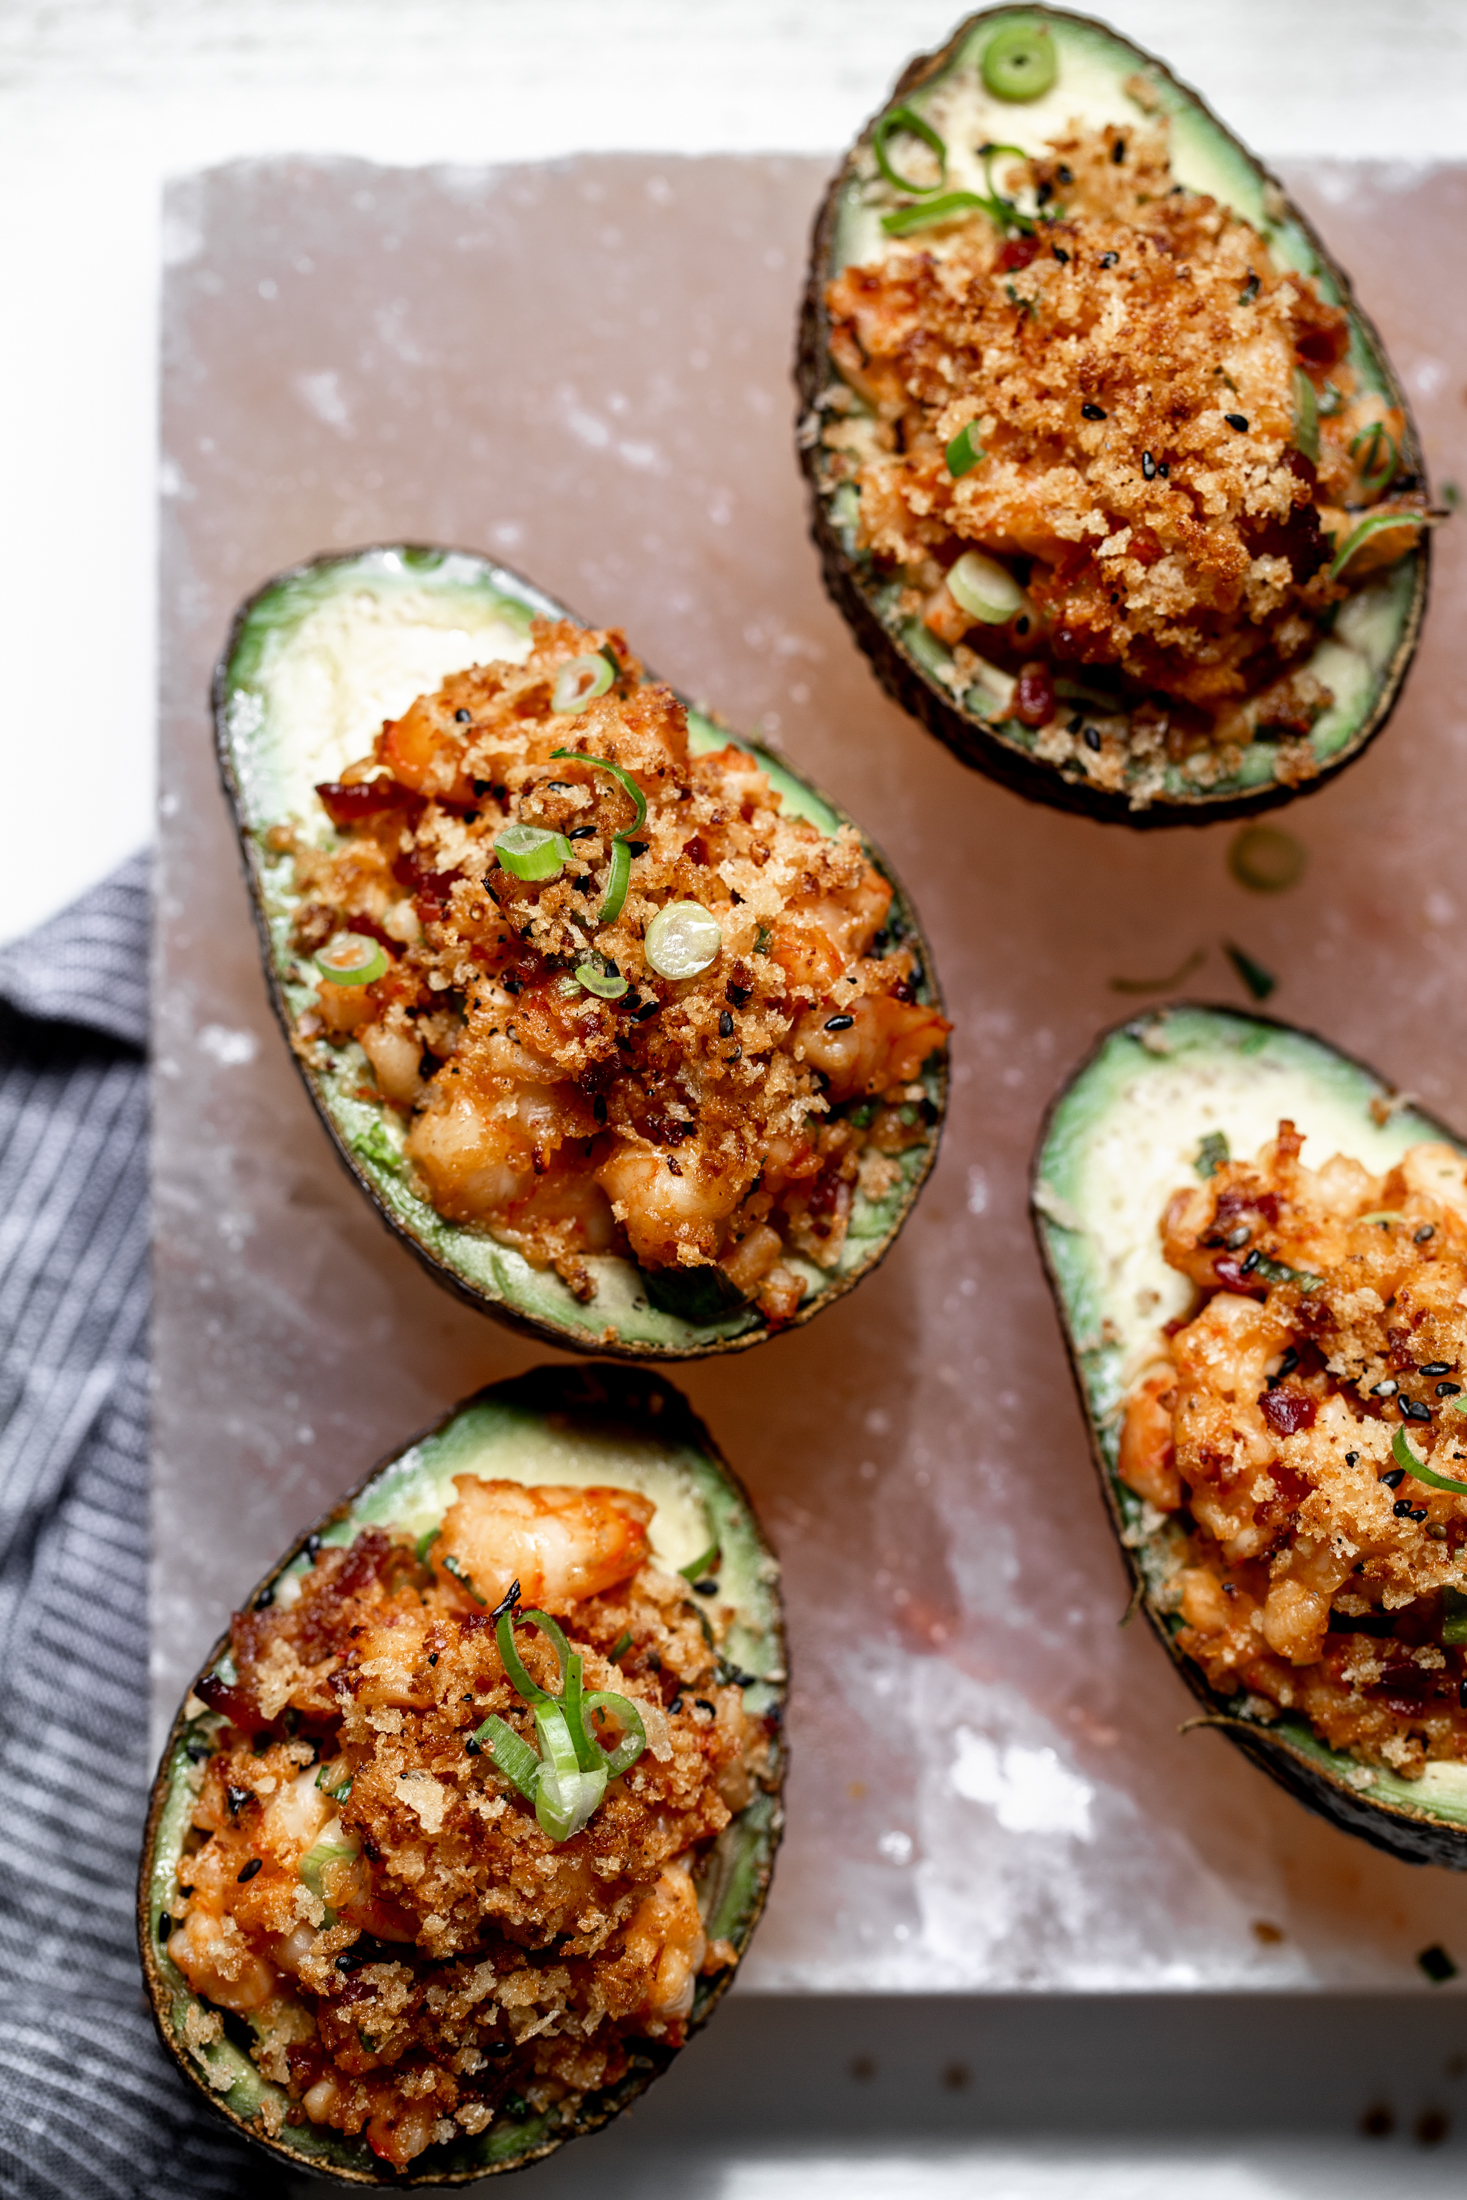 Spicy Shrimp-Salad Stuffed Baked Avocados closeup